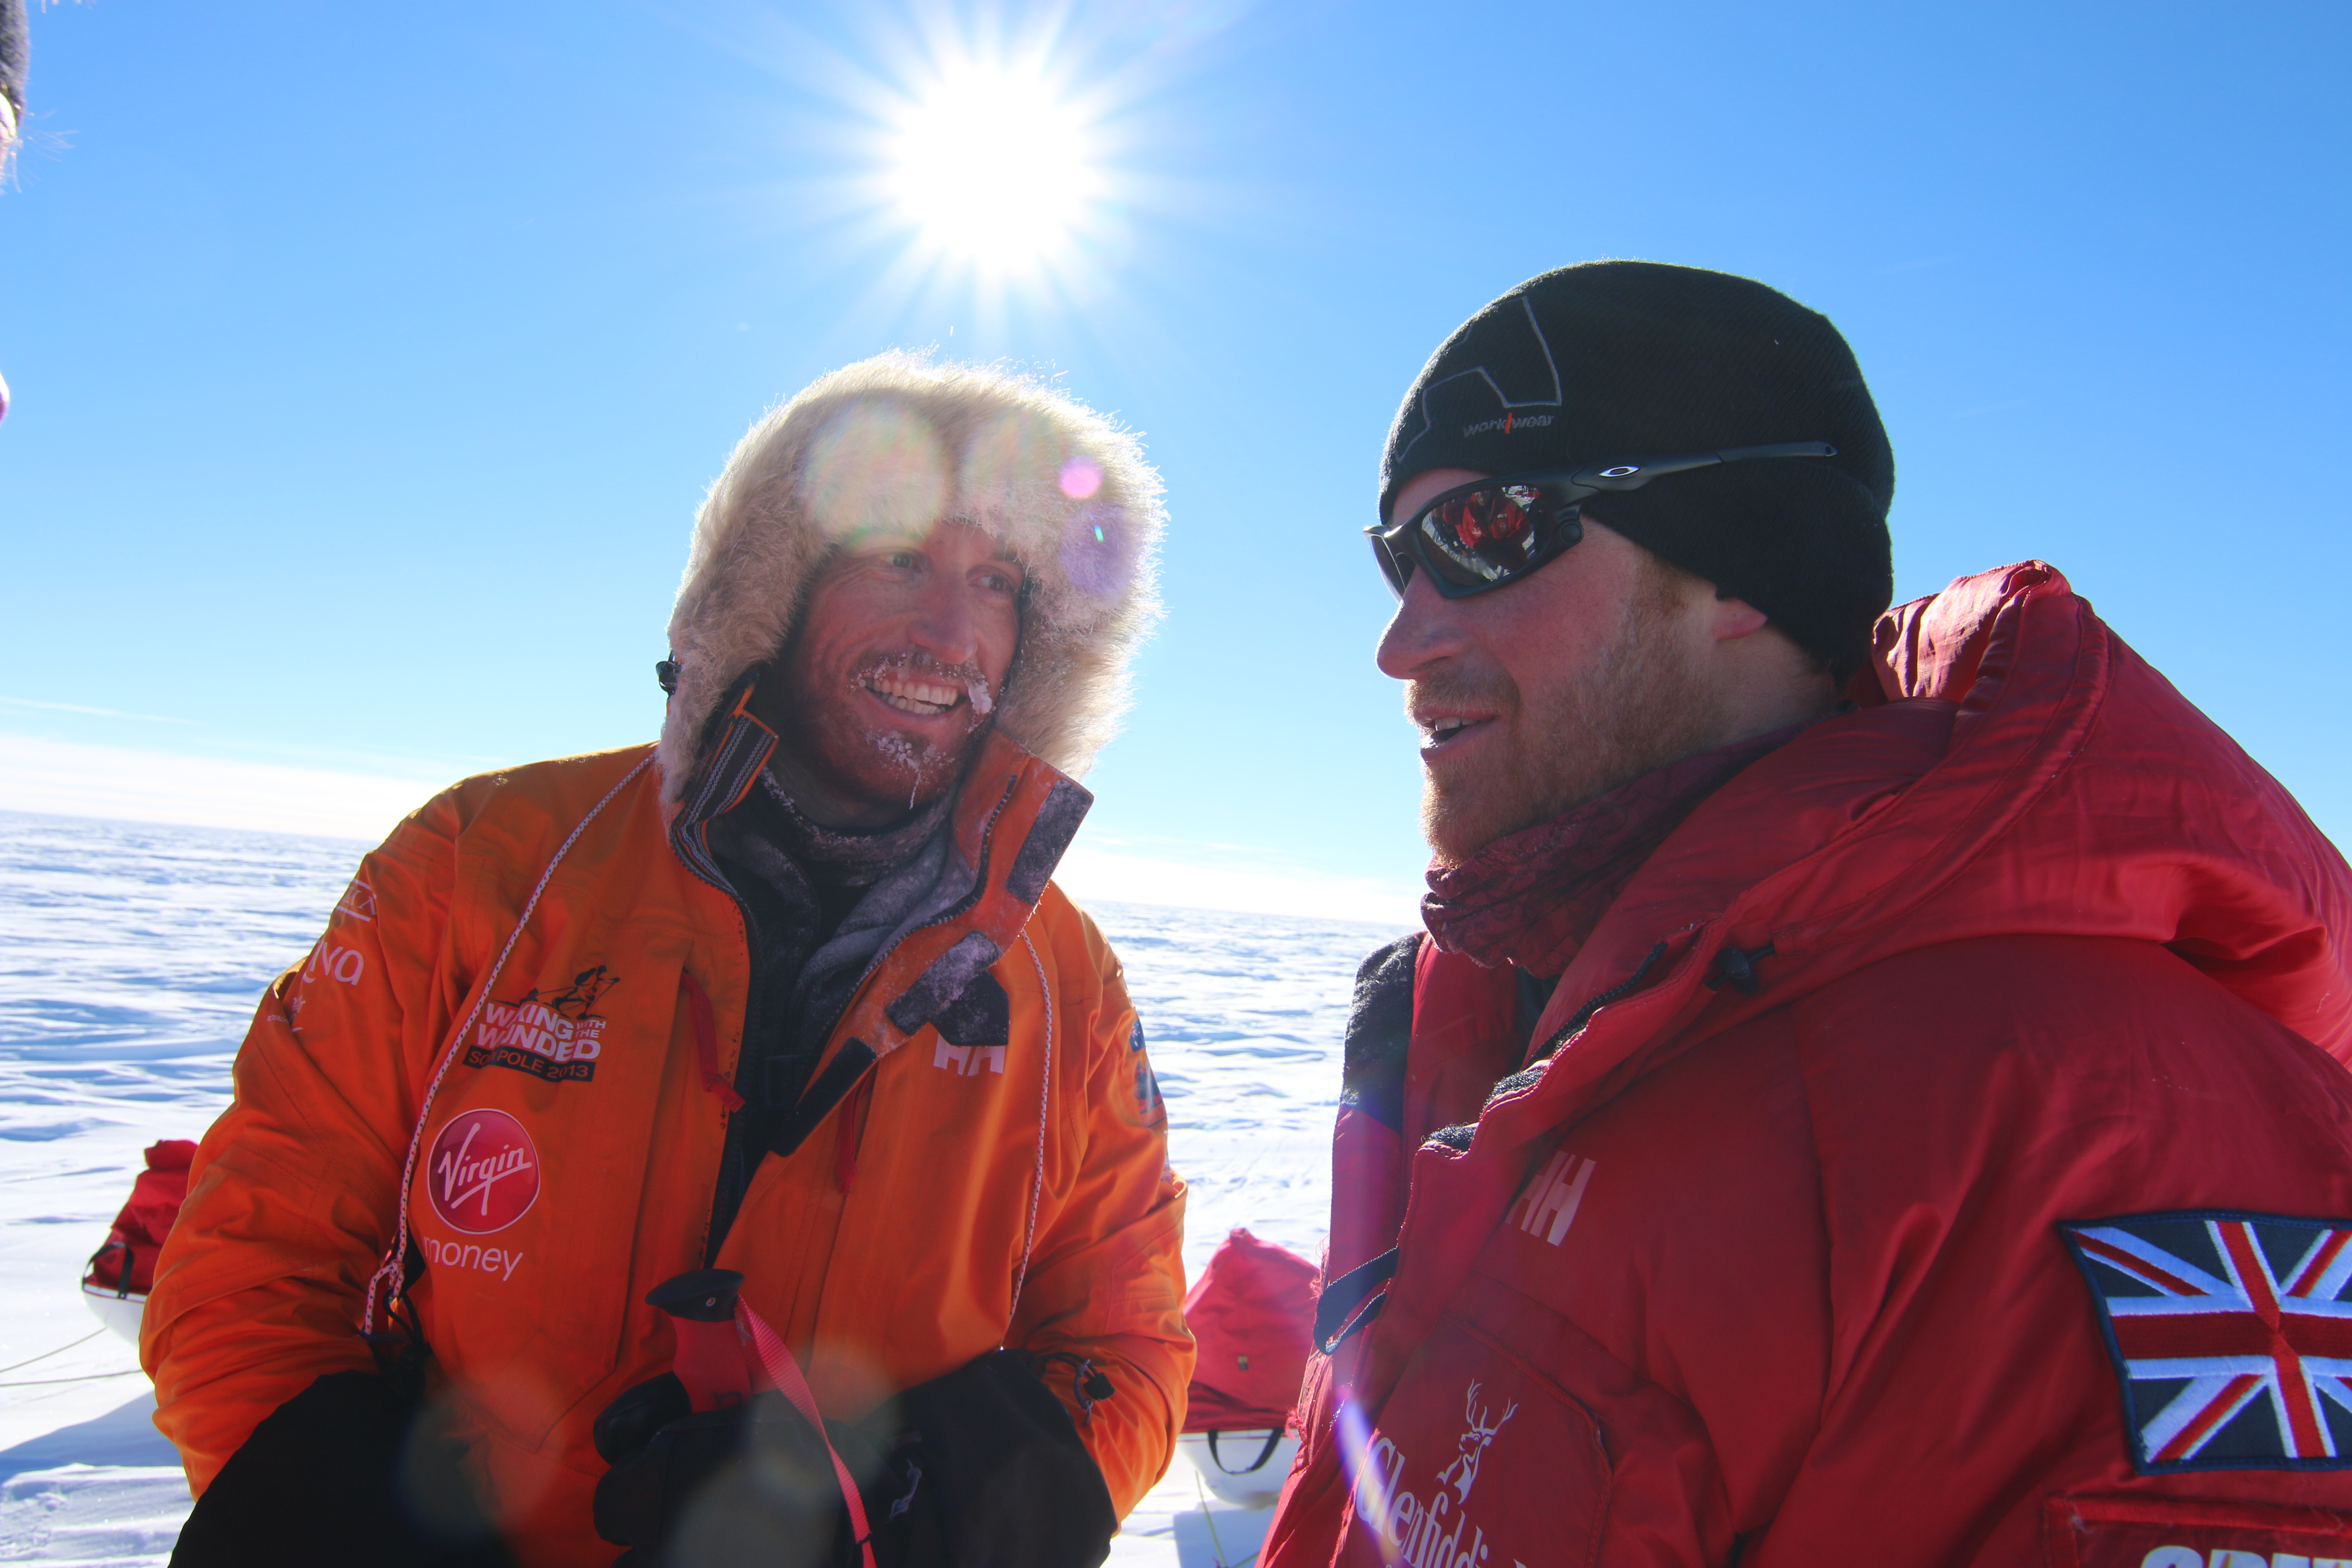 Prince Harry to arrive at the South Pole tomorrow